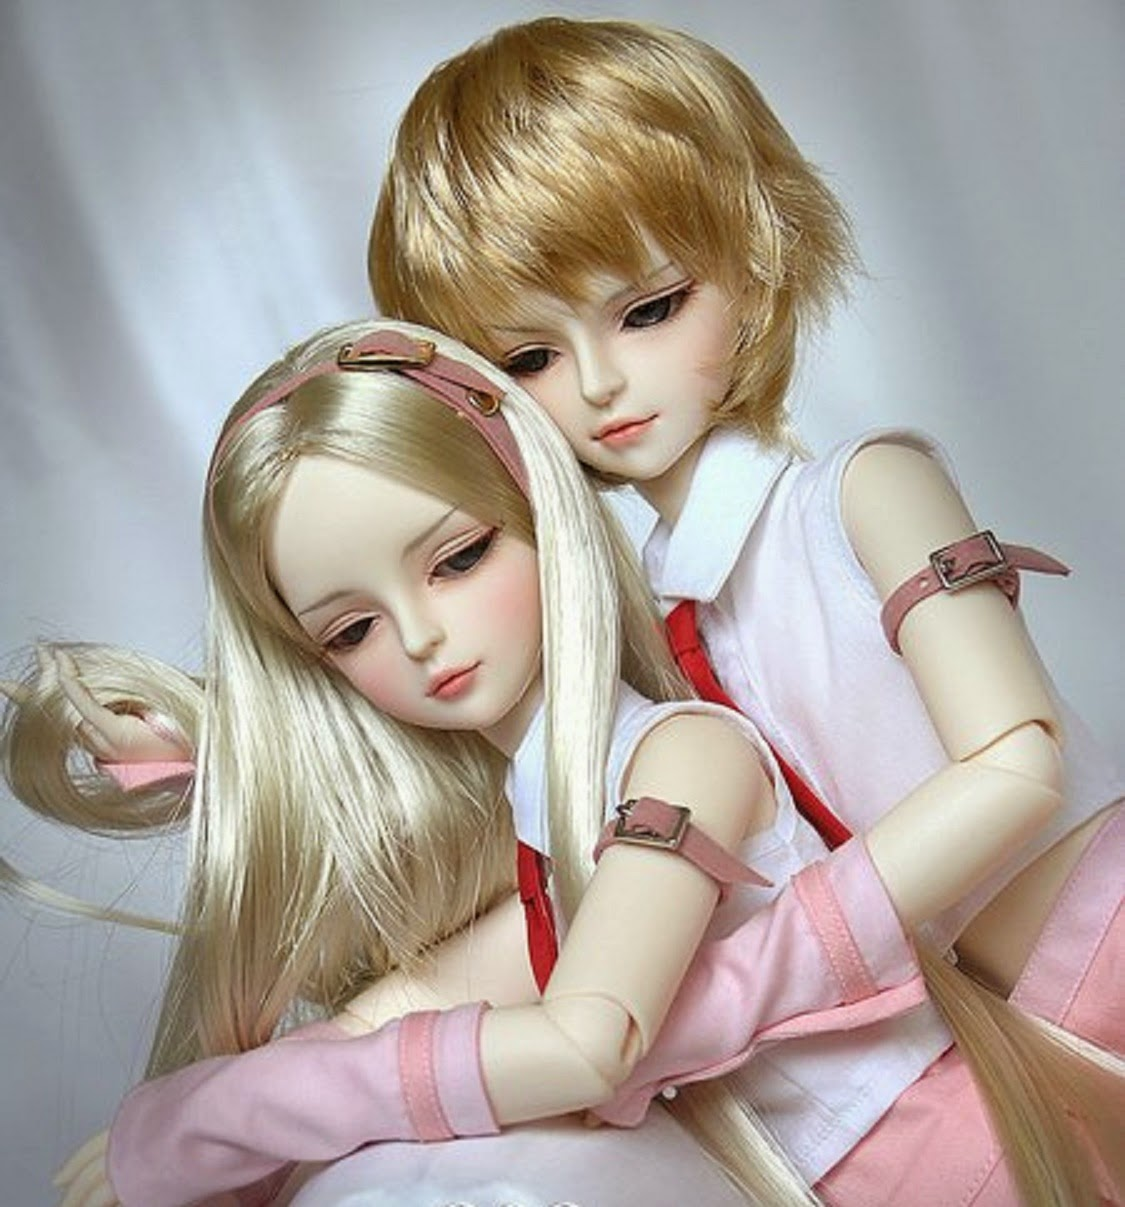 Cute Doll Live Wallpaper: Beautiful And Cute Dolls Images HD Wallpaper